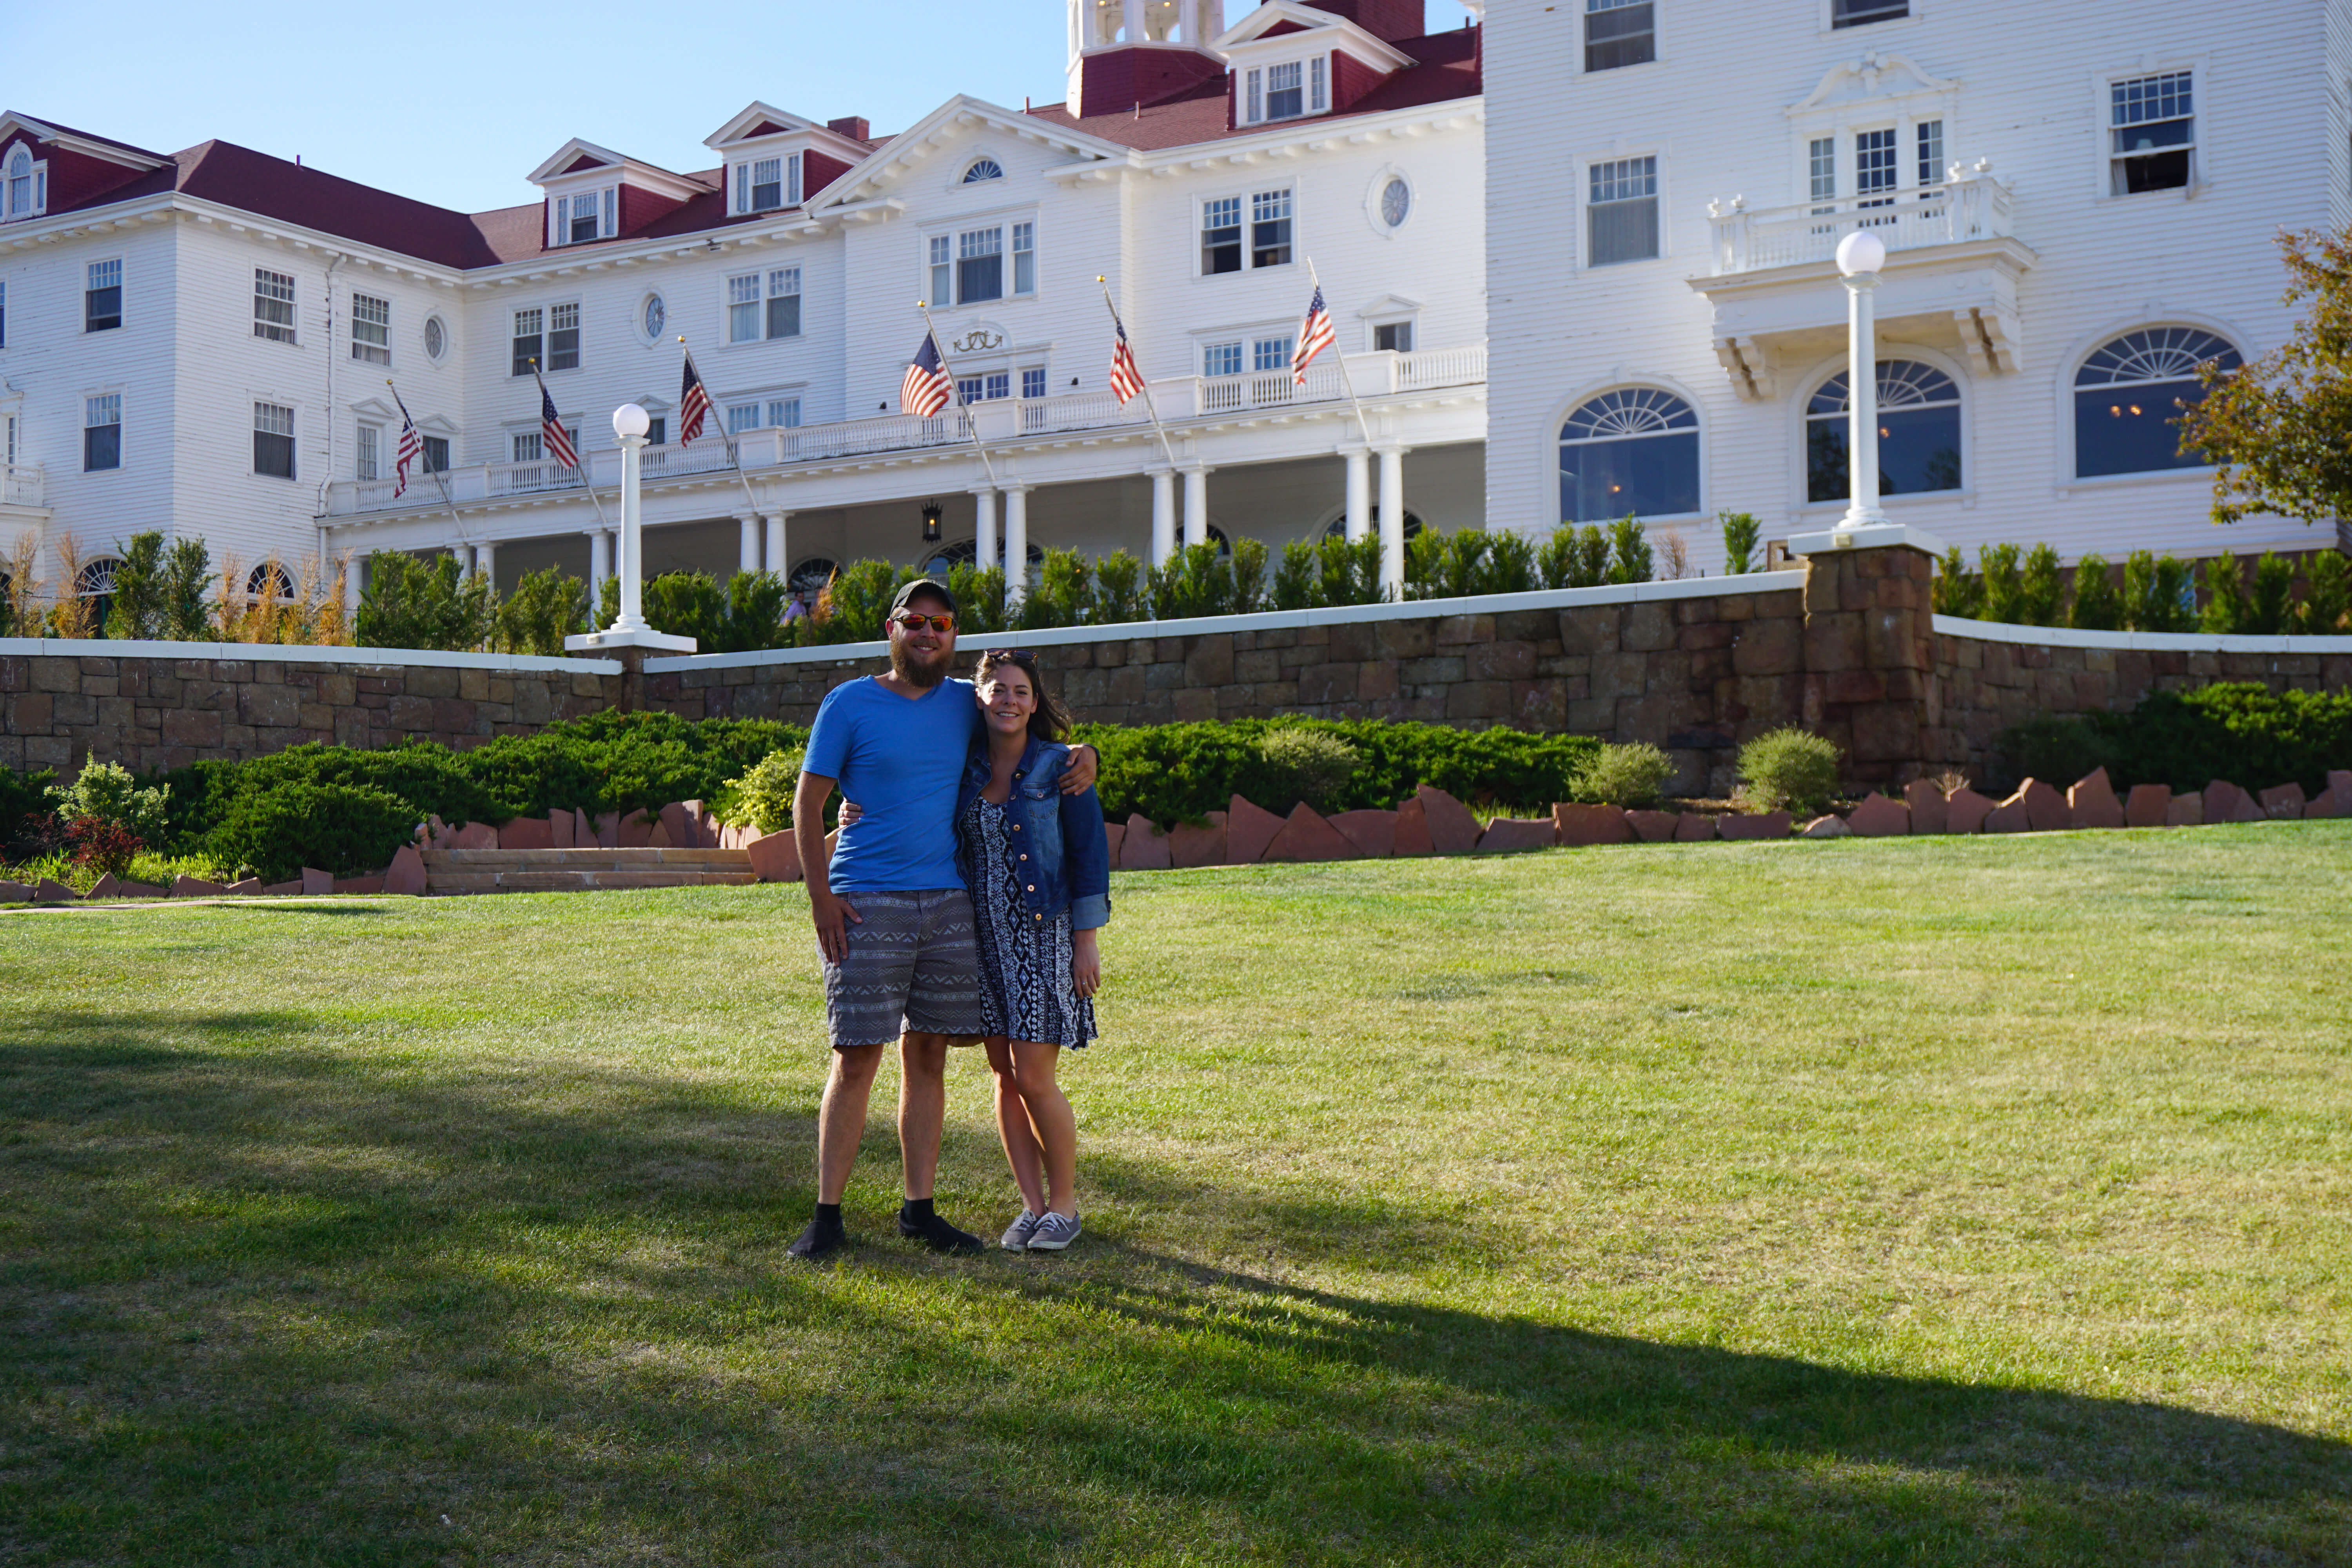 Us in front of The Stanley Hotel